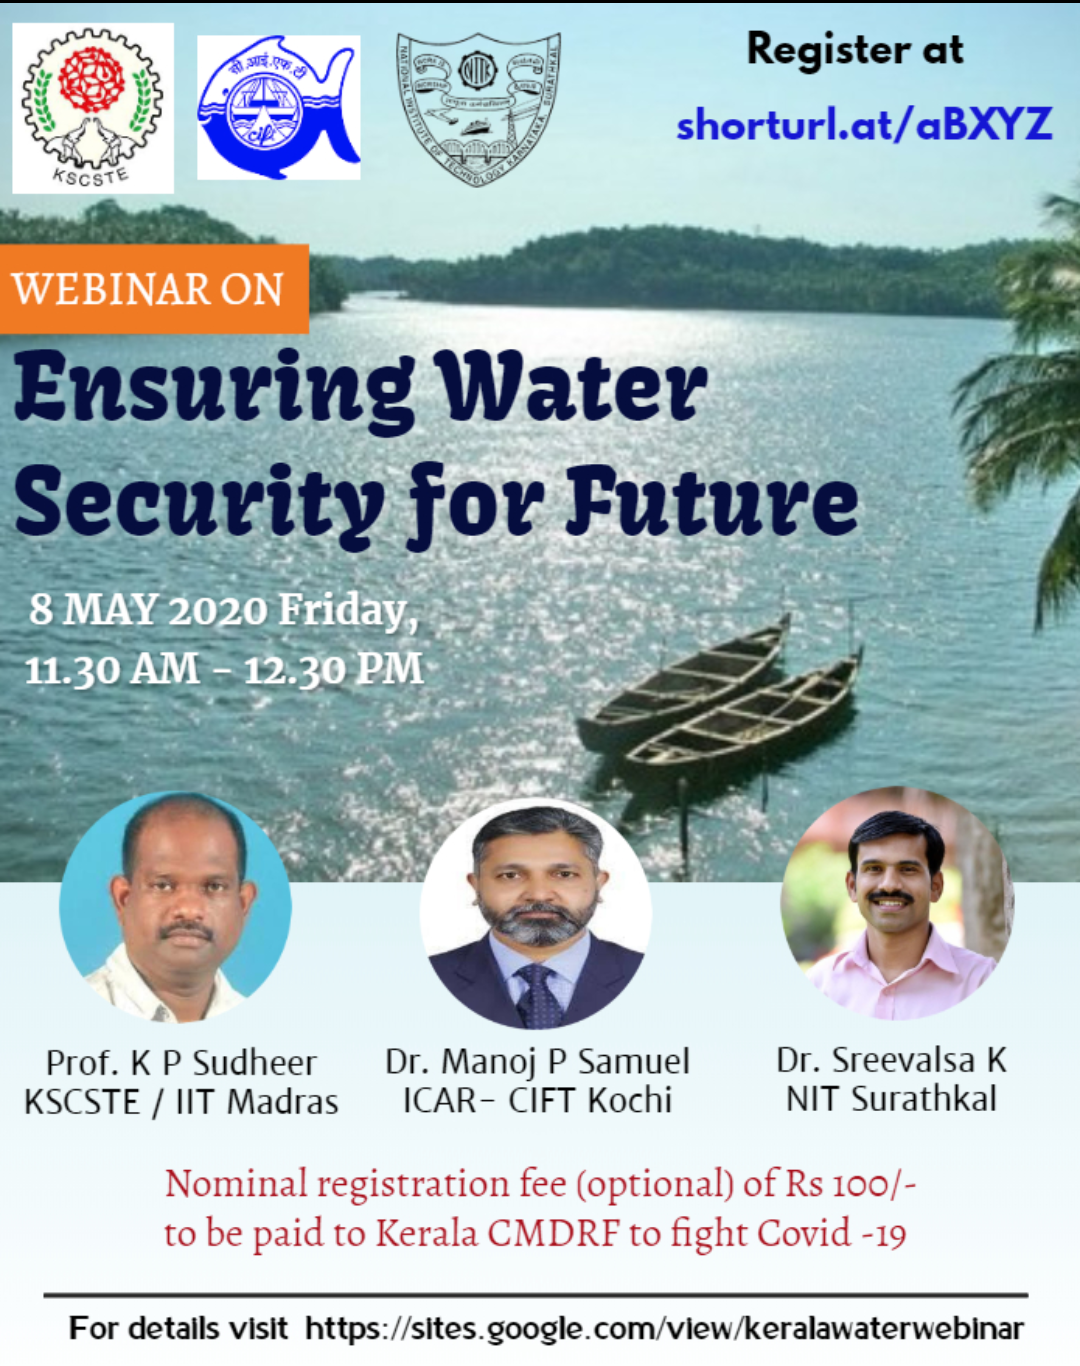 Webinar on Ensuring Water Security for Future